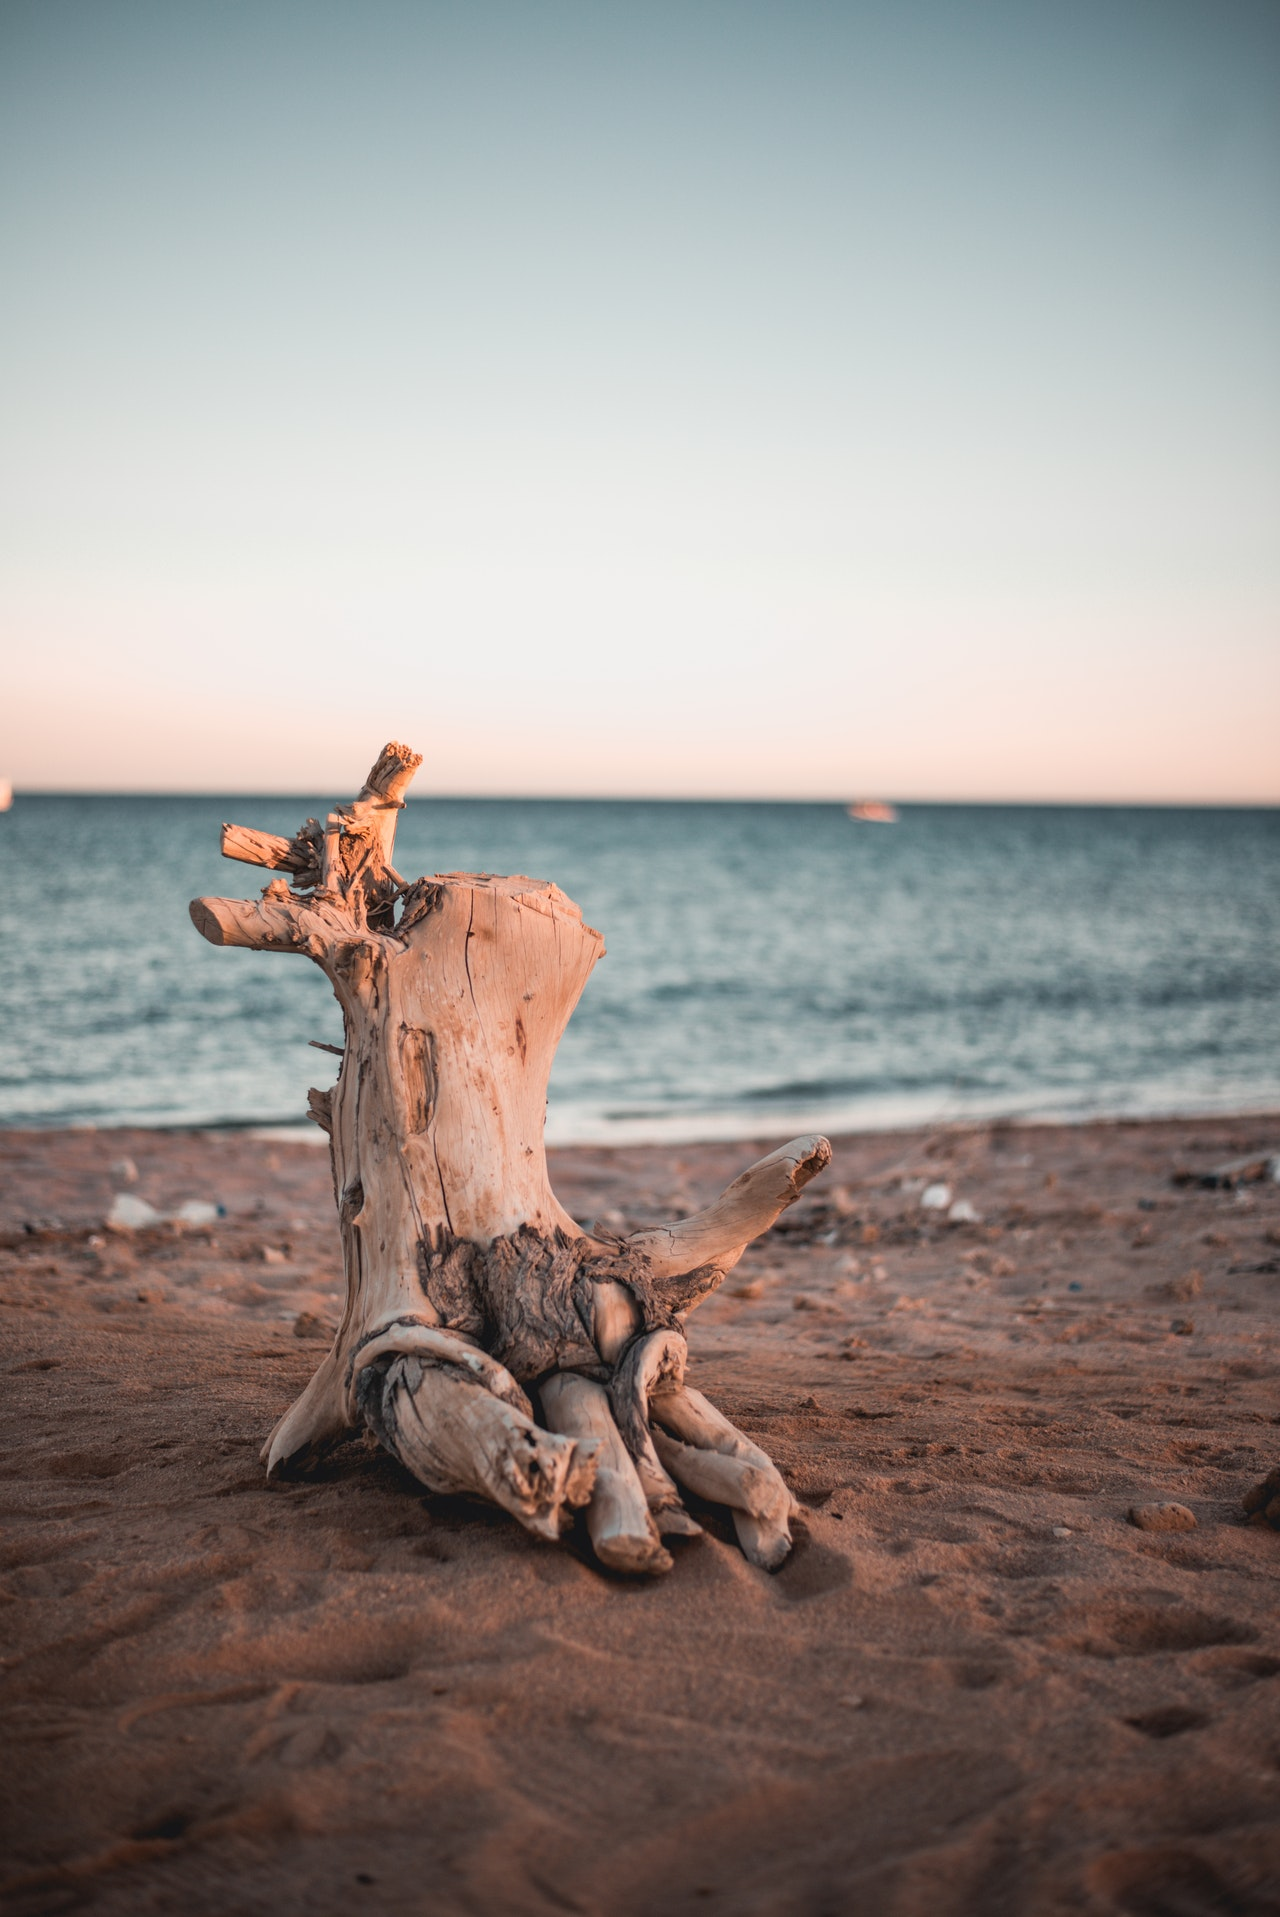 How To Make A Driftwood Sculpture Simple Step By Guide